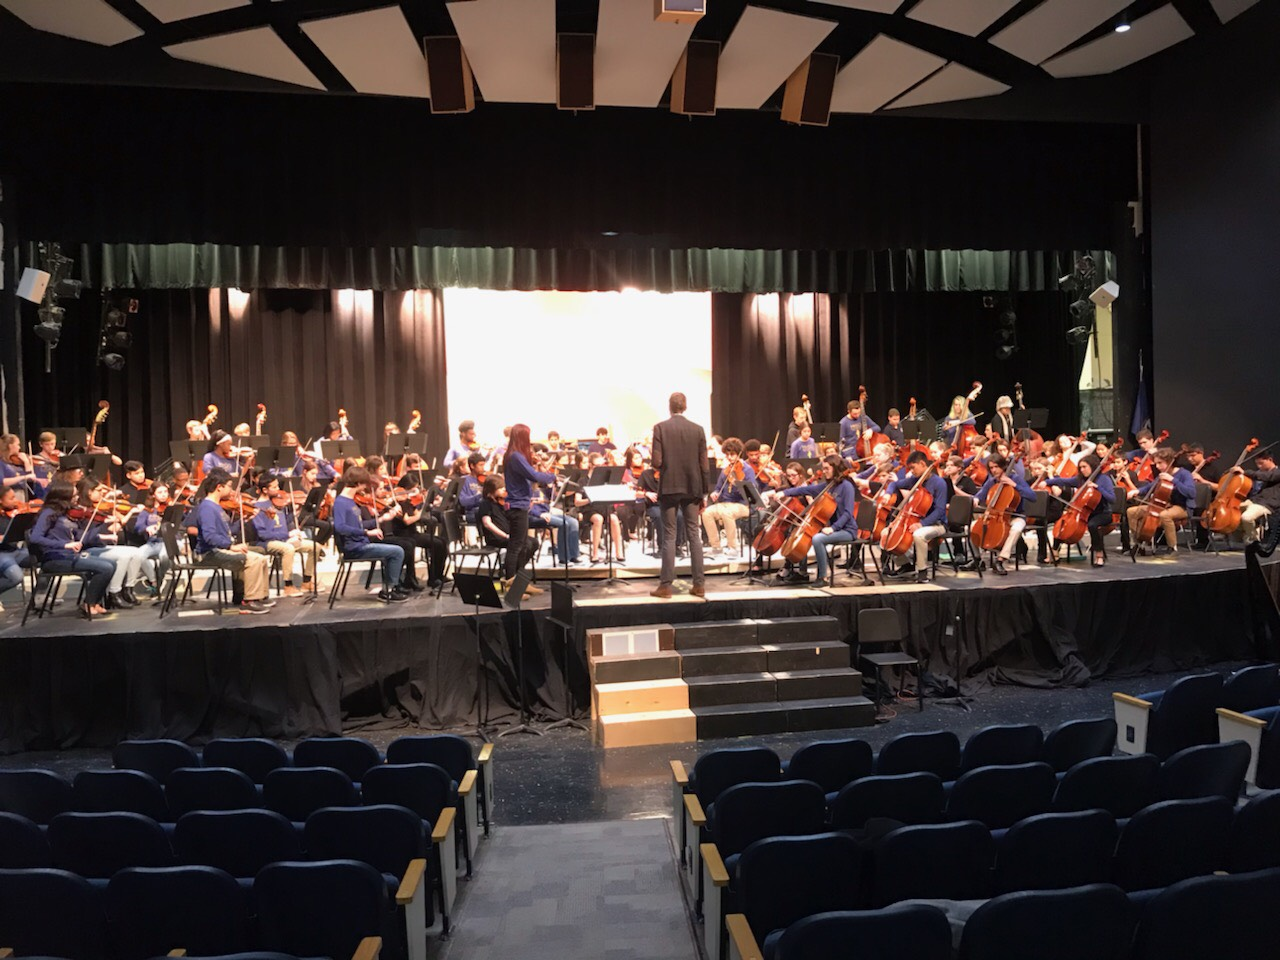 Over 100 students gathered for the annual combined fall orchestra concert.